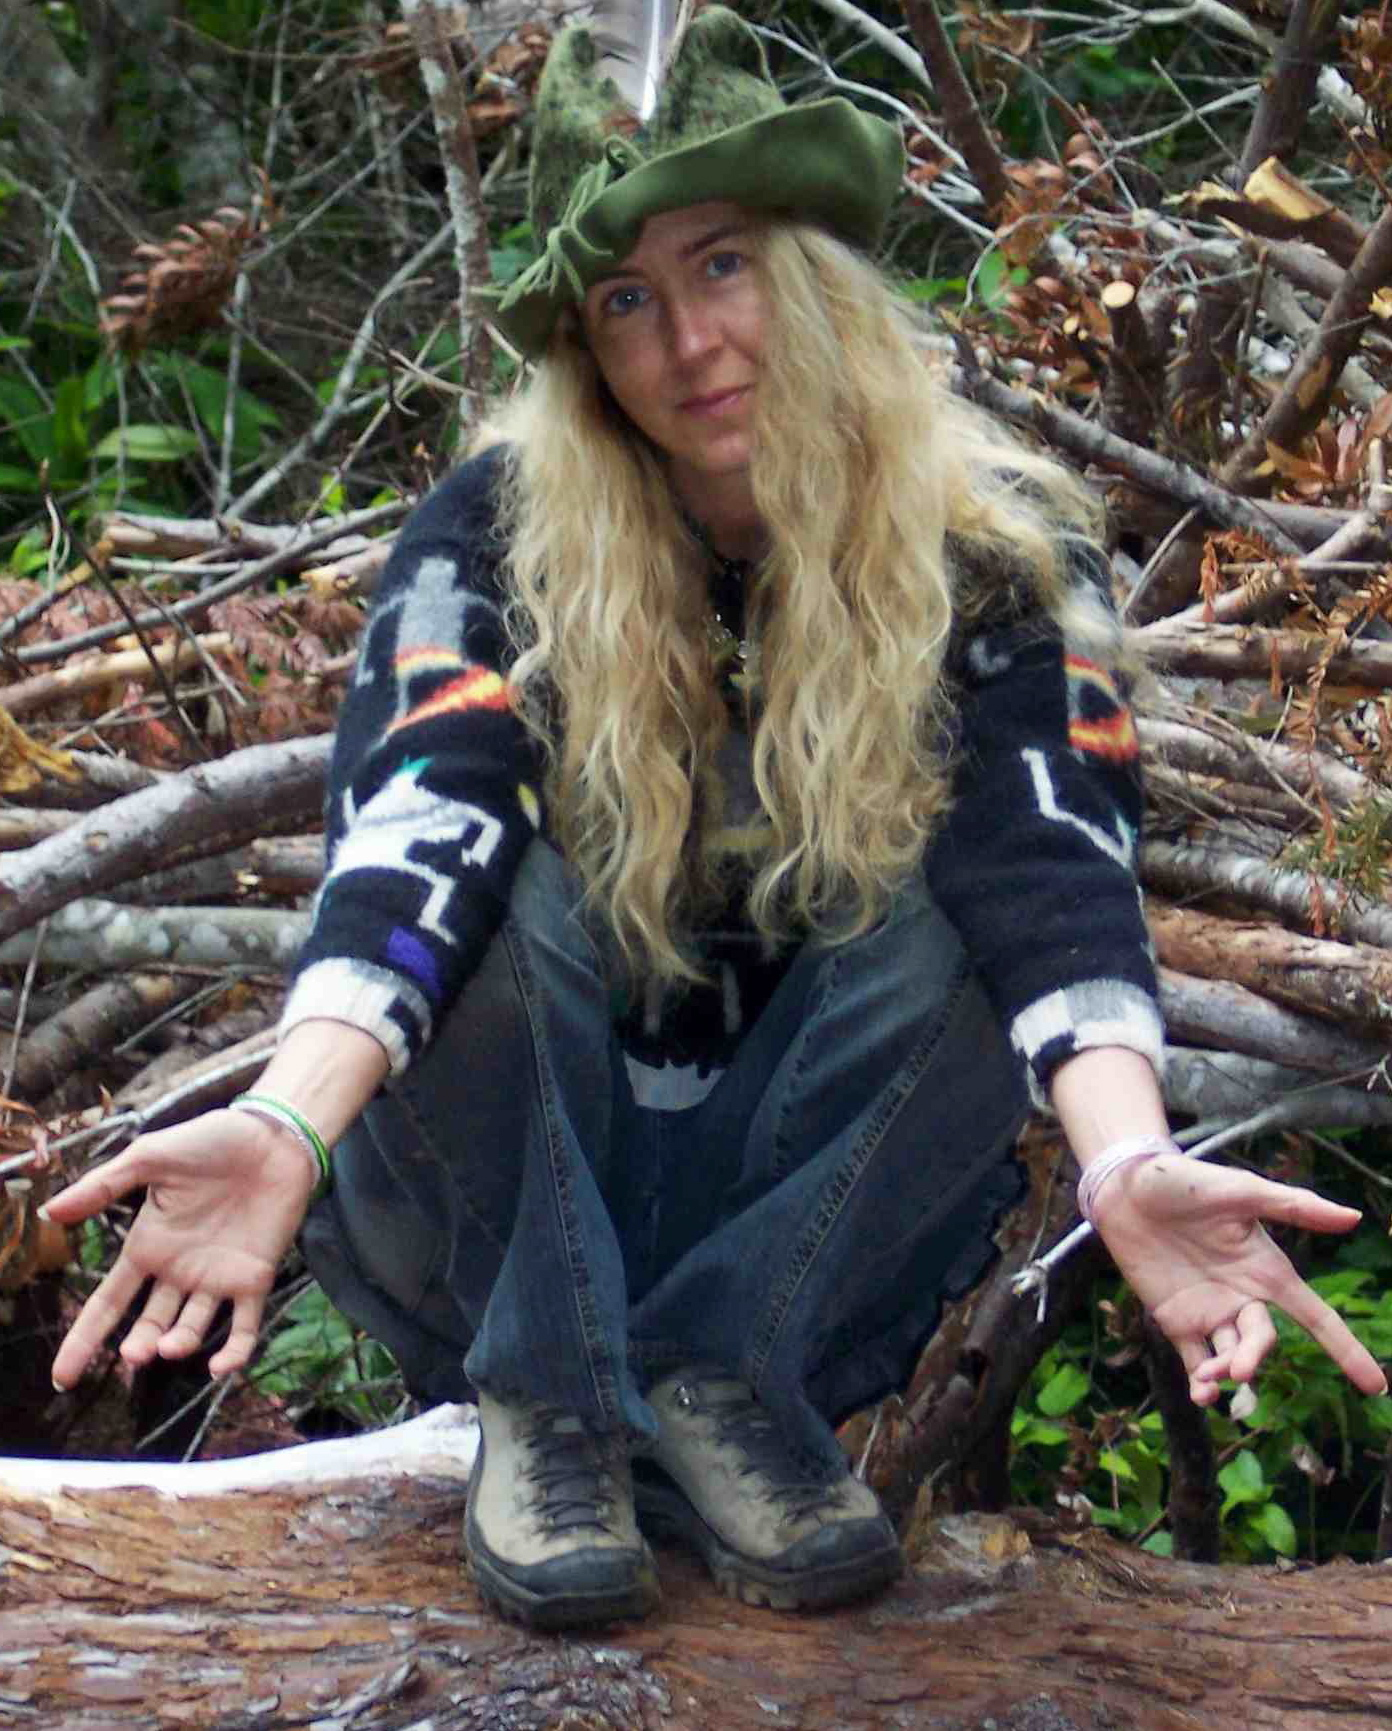 A faery woman dons her elfin hat and squats on a tree trunk, hands open.